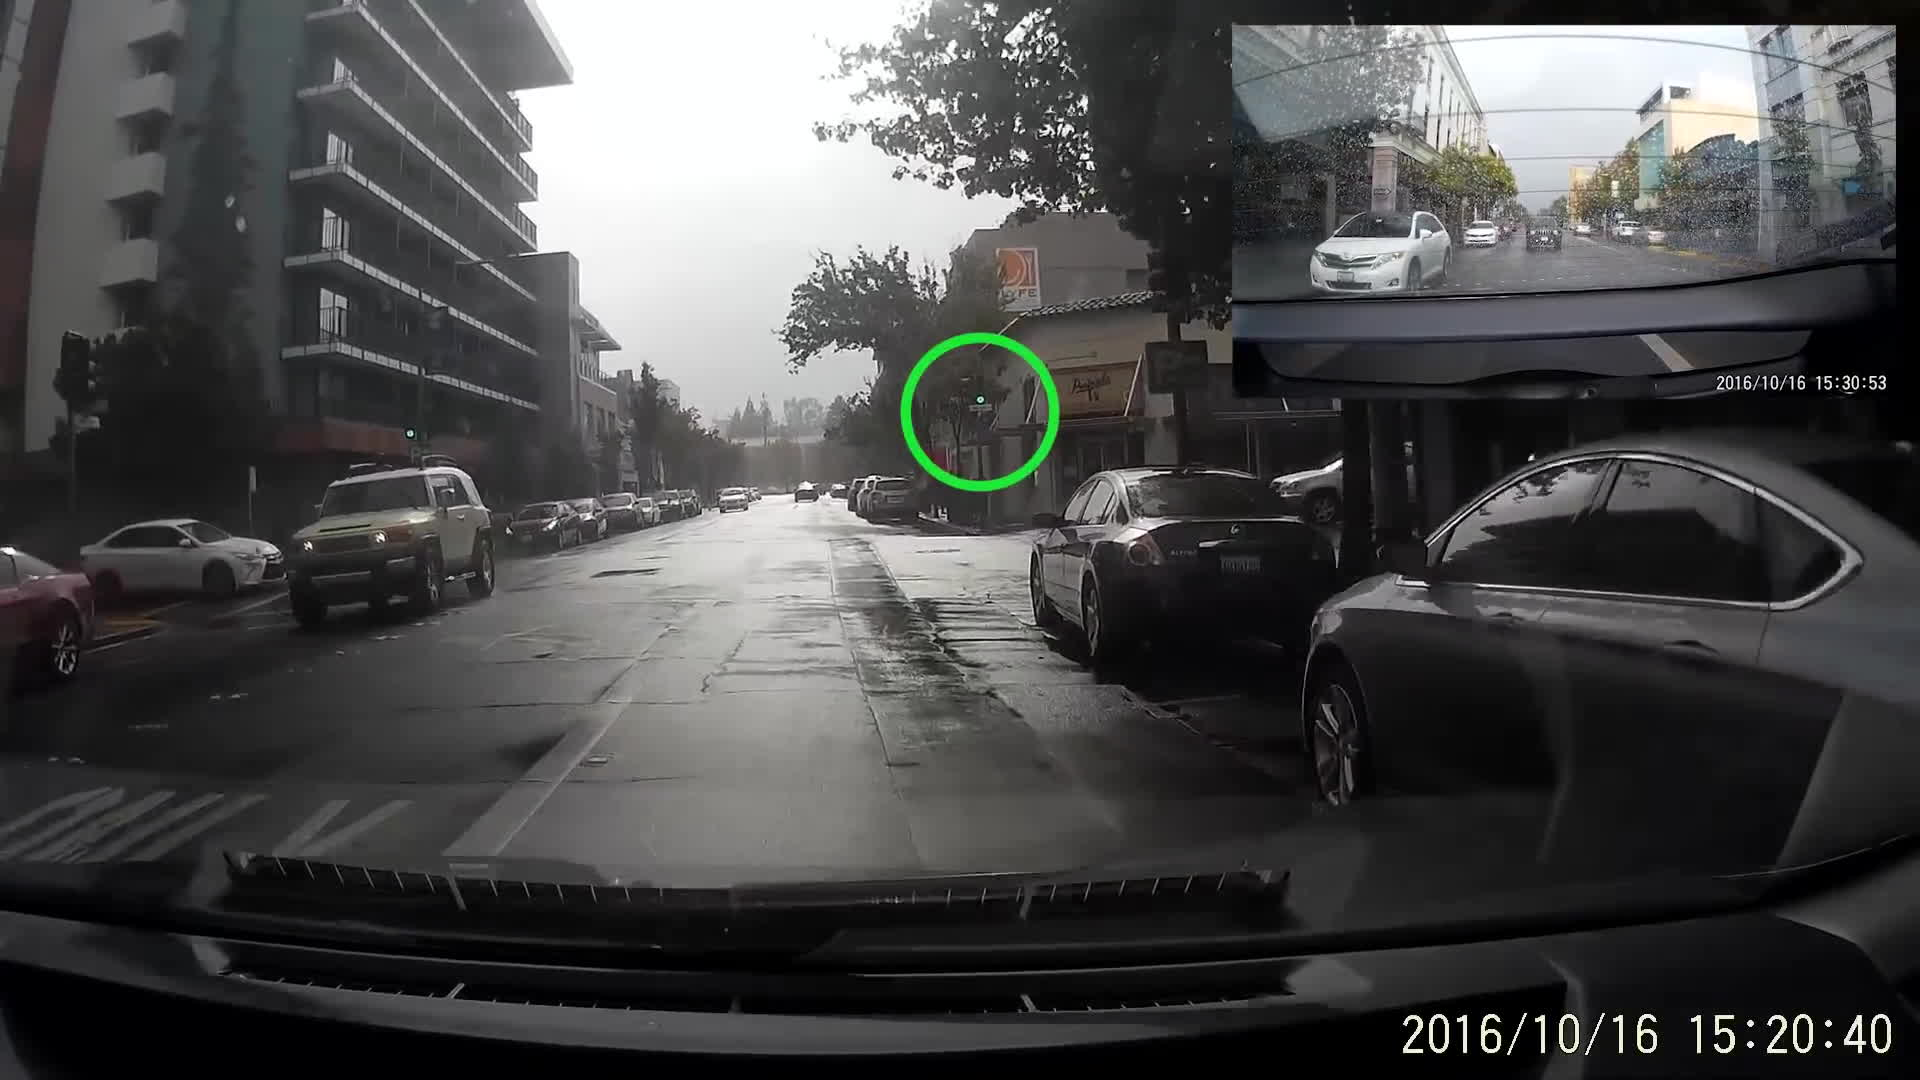 JusticeServed, justiceserved, Palo Alto Red Light Runner Instant Justice GIFs